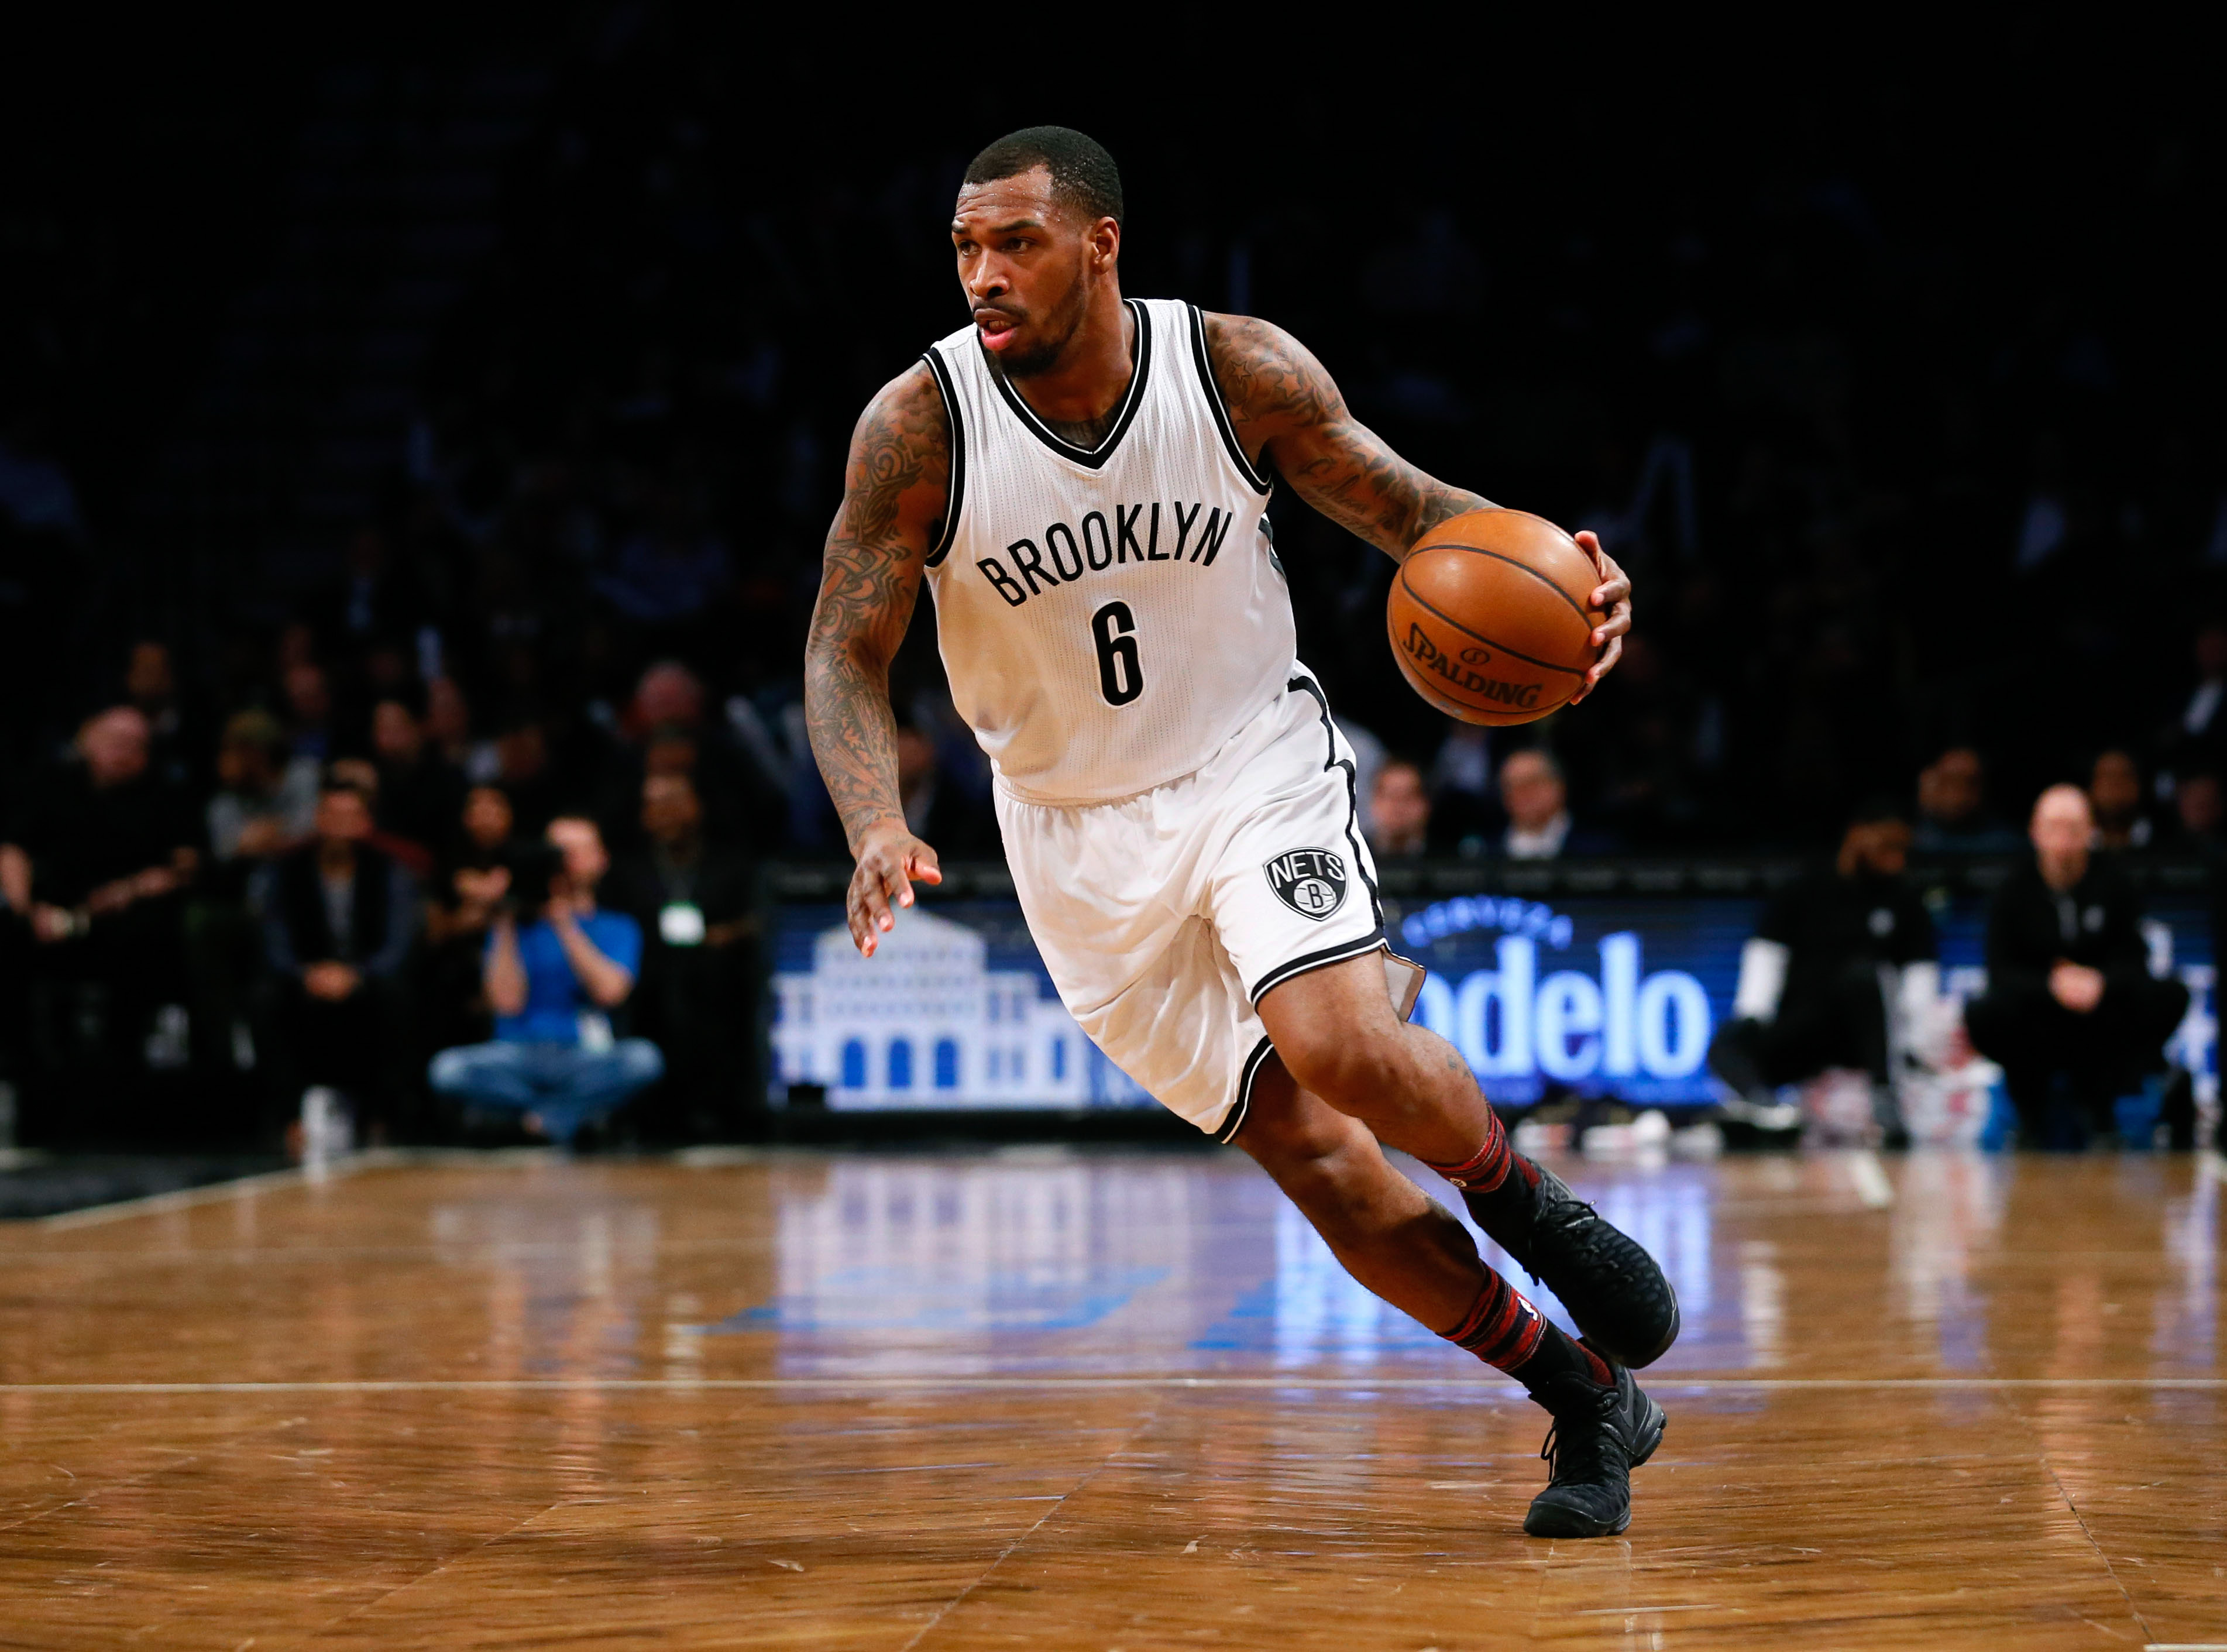 9877008-nba-washington-wizards-at-brooklyn-nets